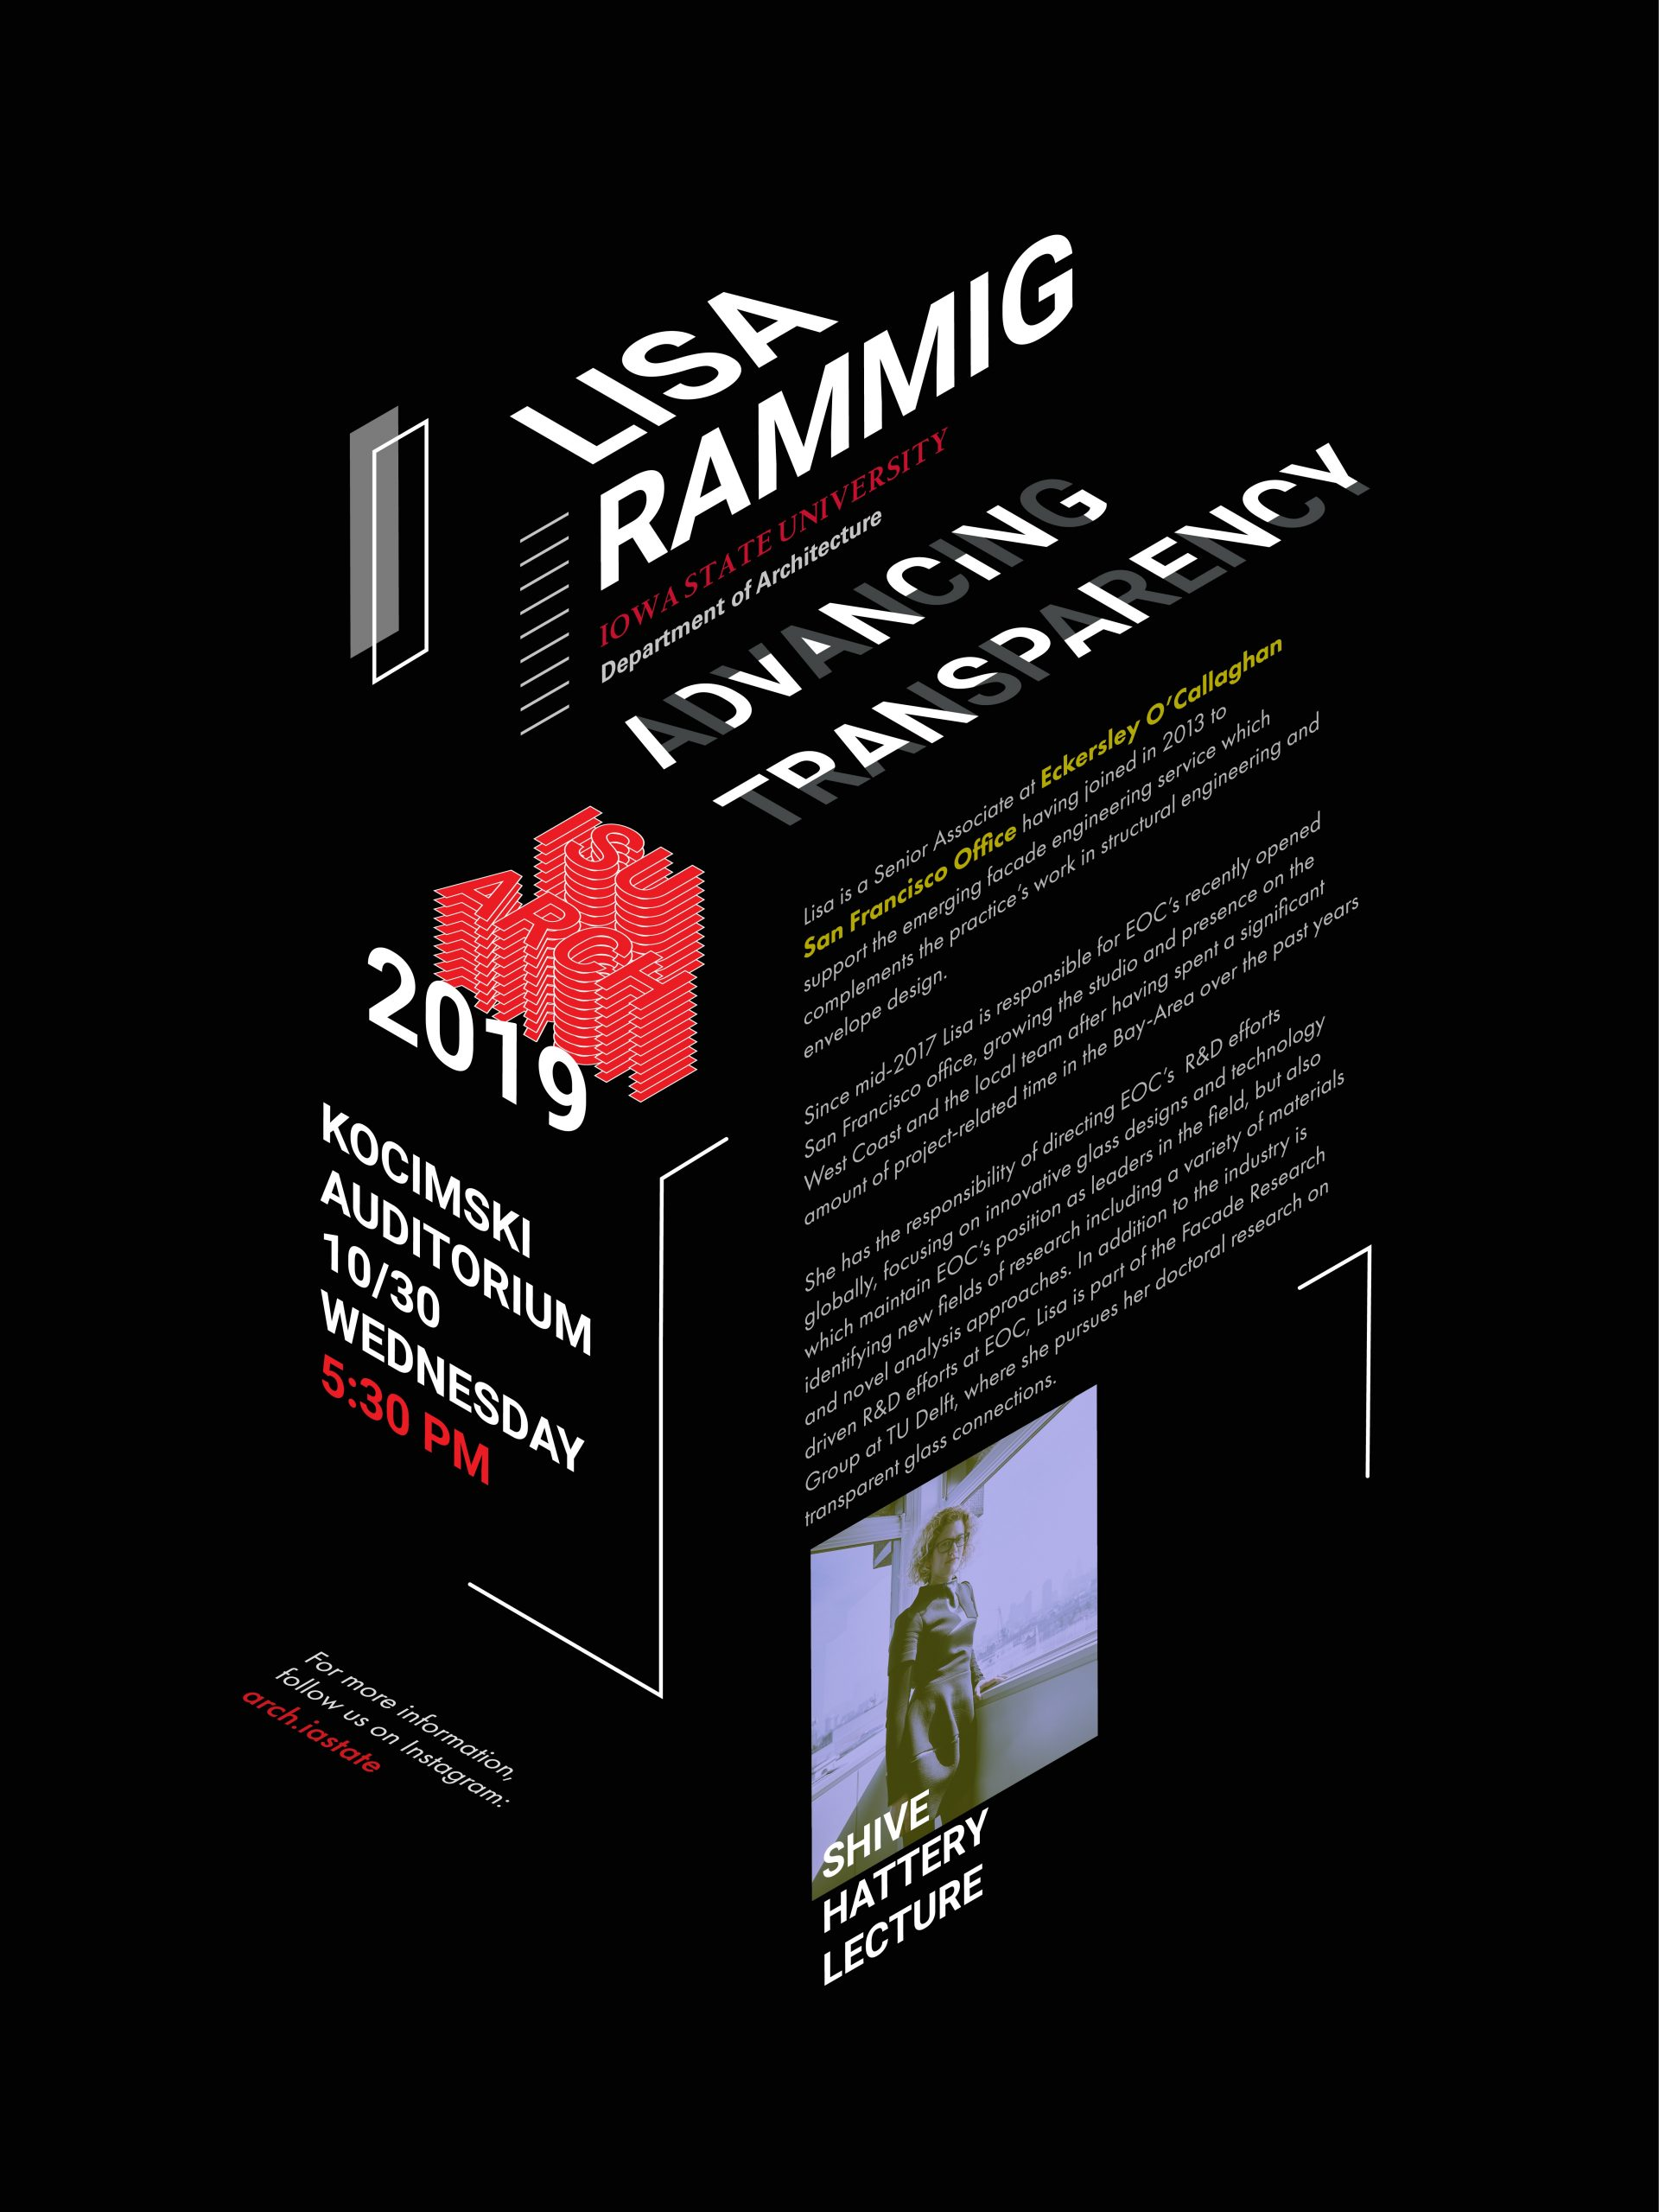 Lisa Rammig Lecture Poster